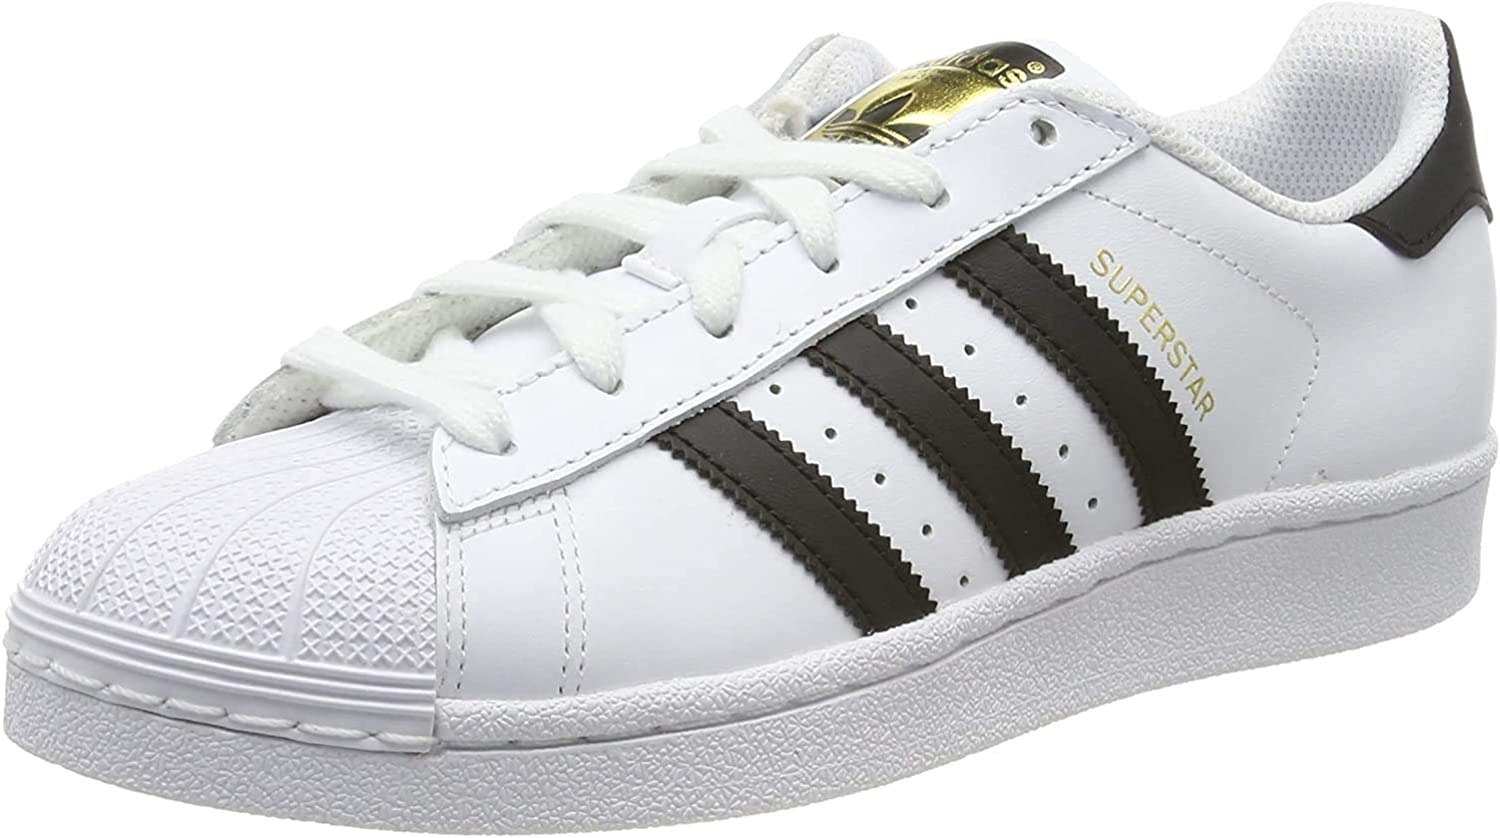 adidas Originals Superstar, Zapatillas Unisex Niños